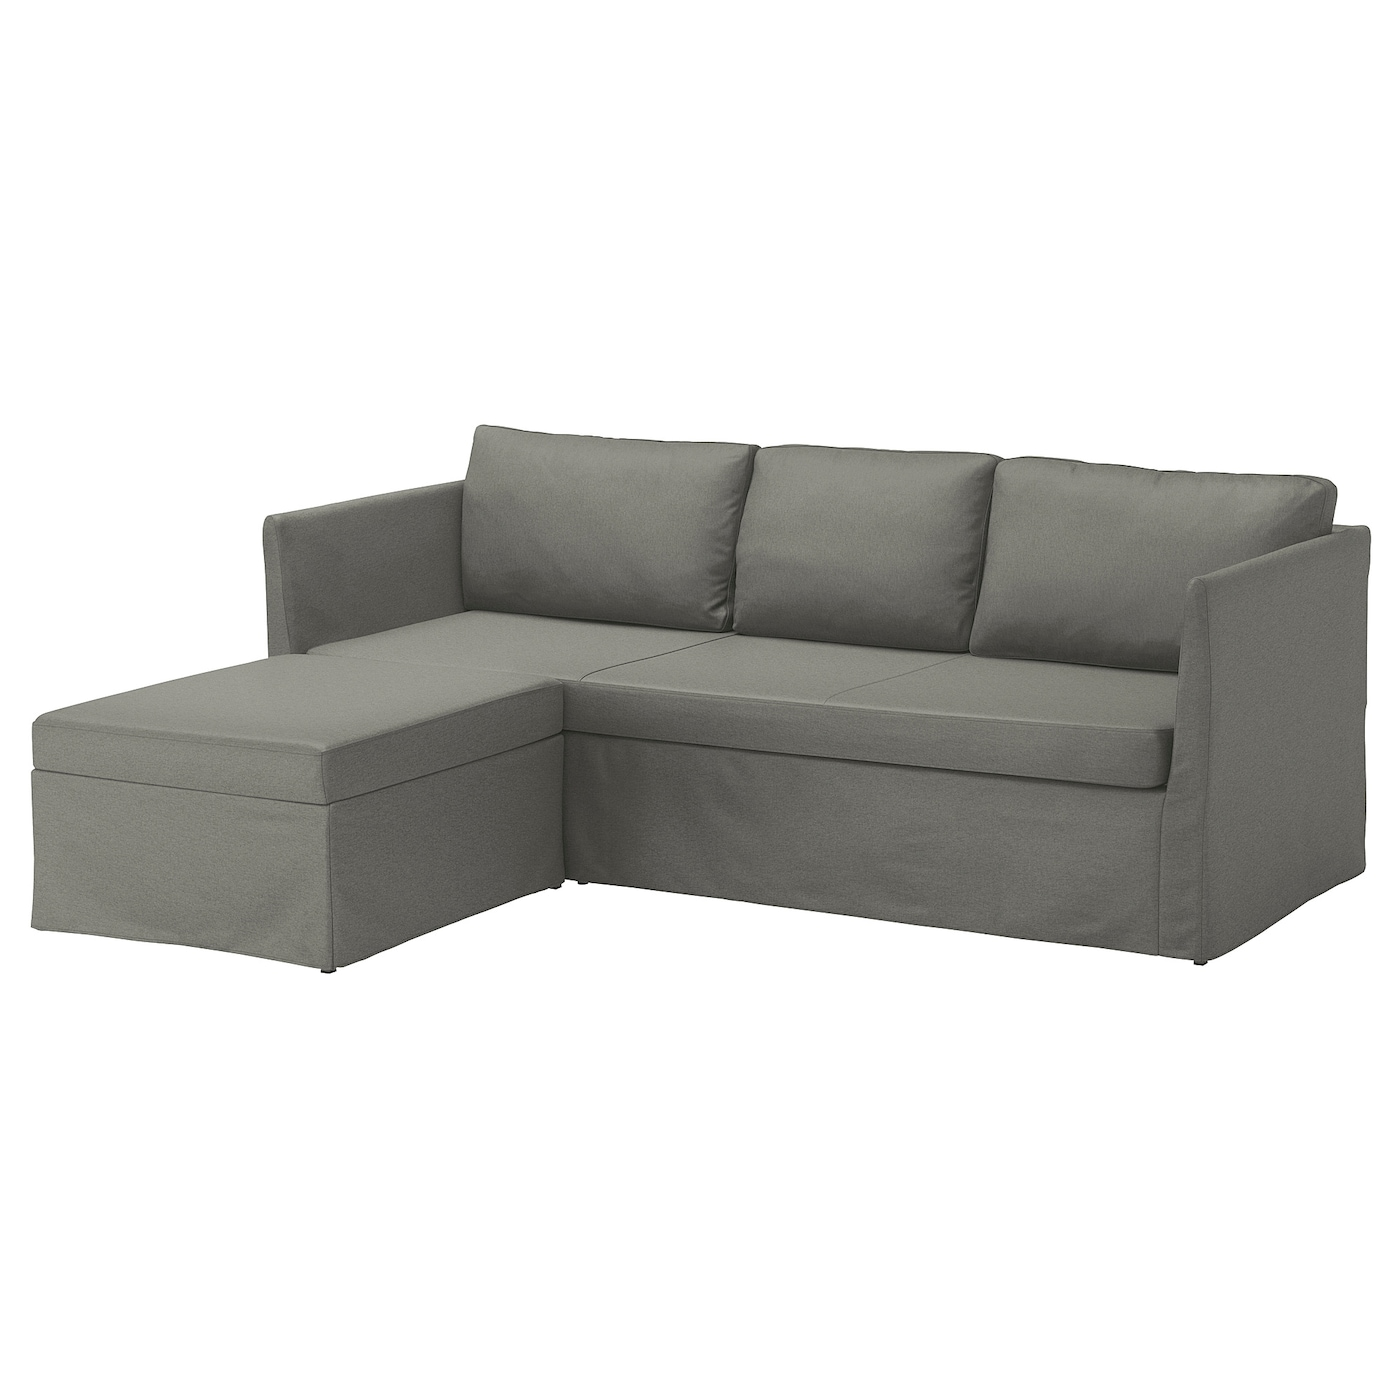 Br thult corner sofa bed borred grey green ikea - Hoek sofa x ...